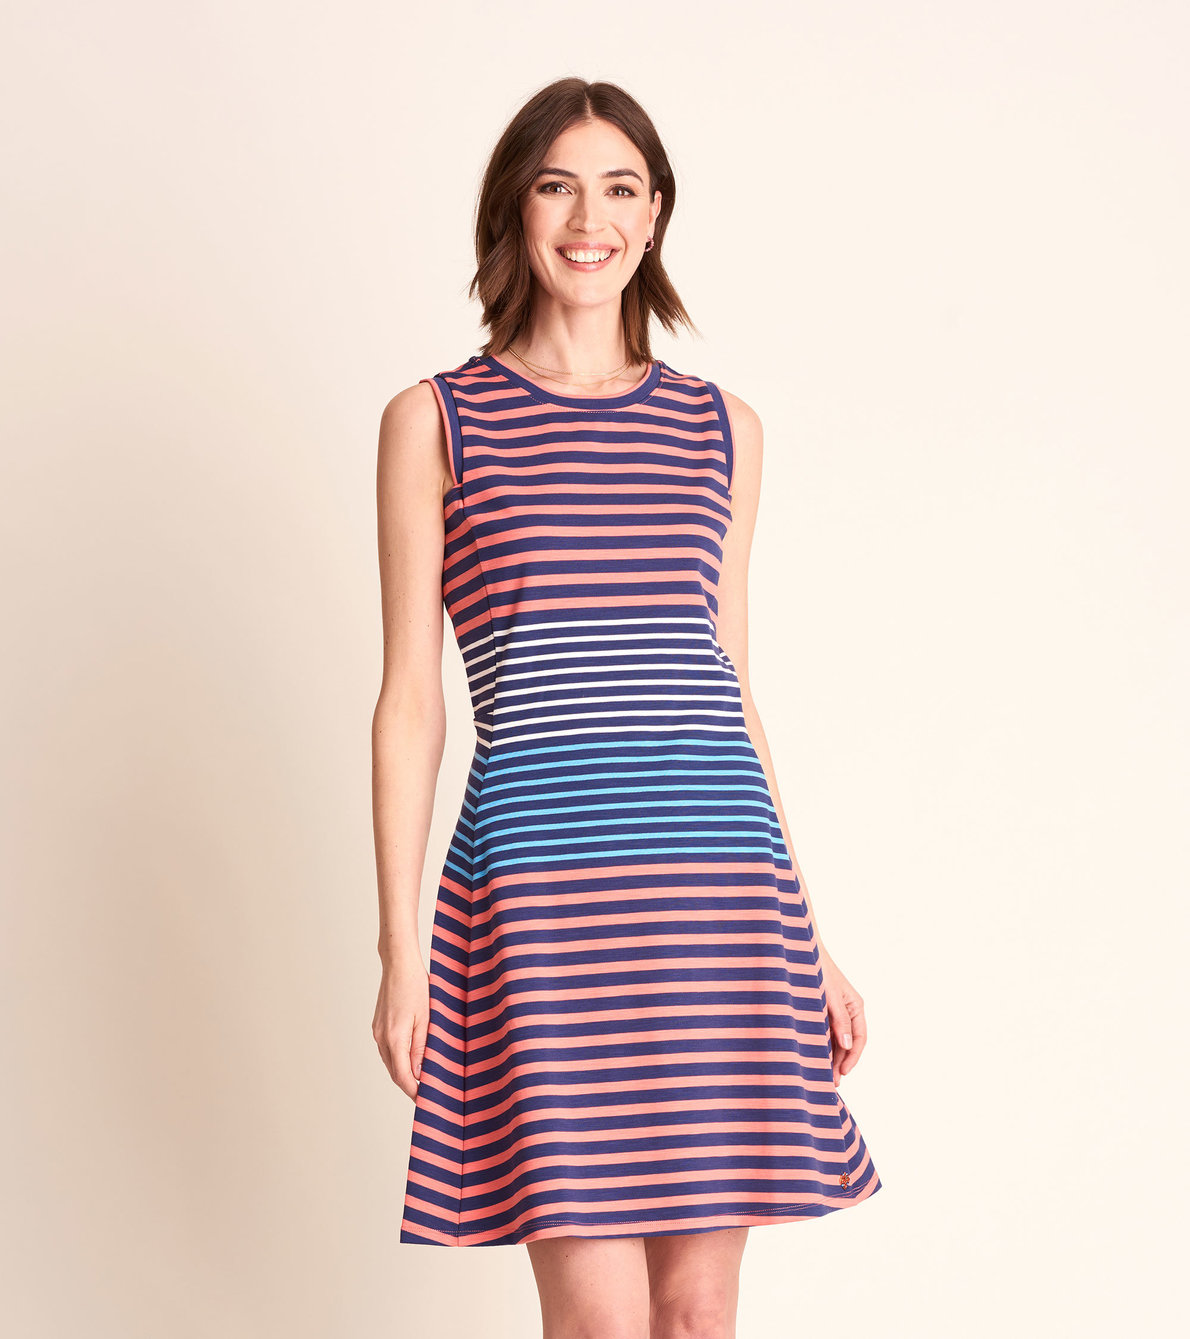 View larger image of Sarah Dress - Navy and Coral Stripes